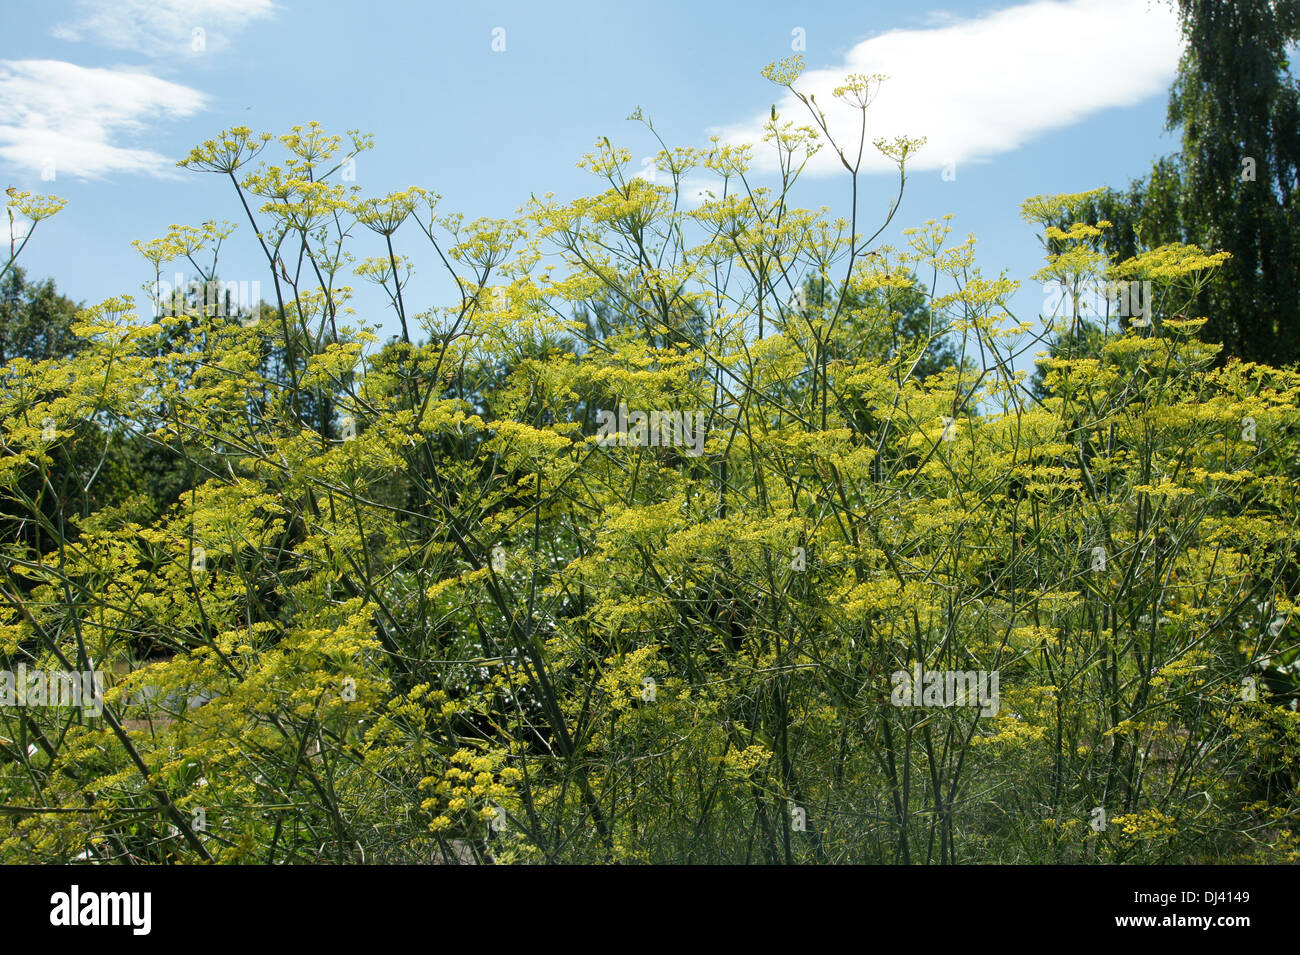 Foeniculum vulgare, Fenchel, fennel Stock Photo